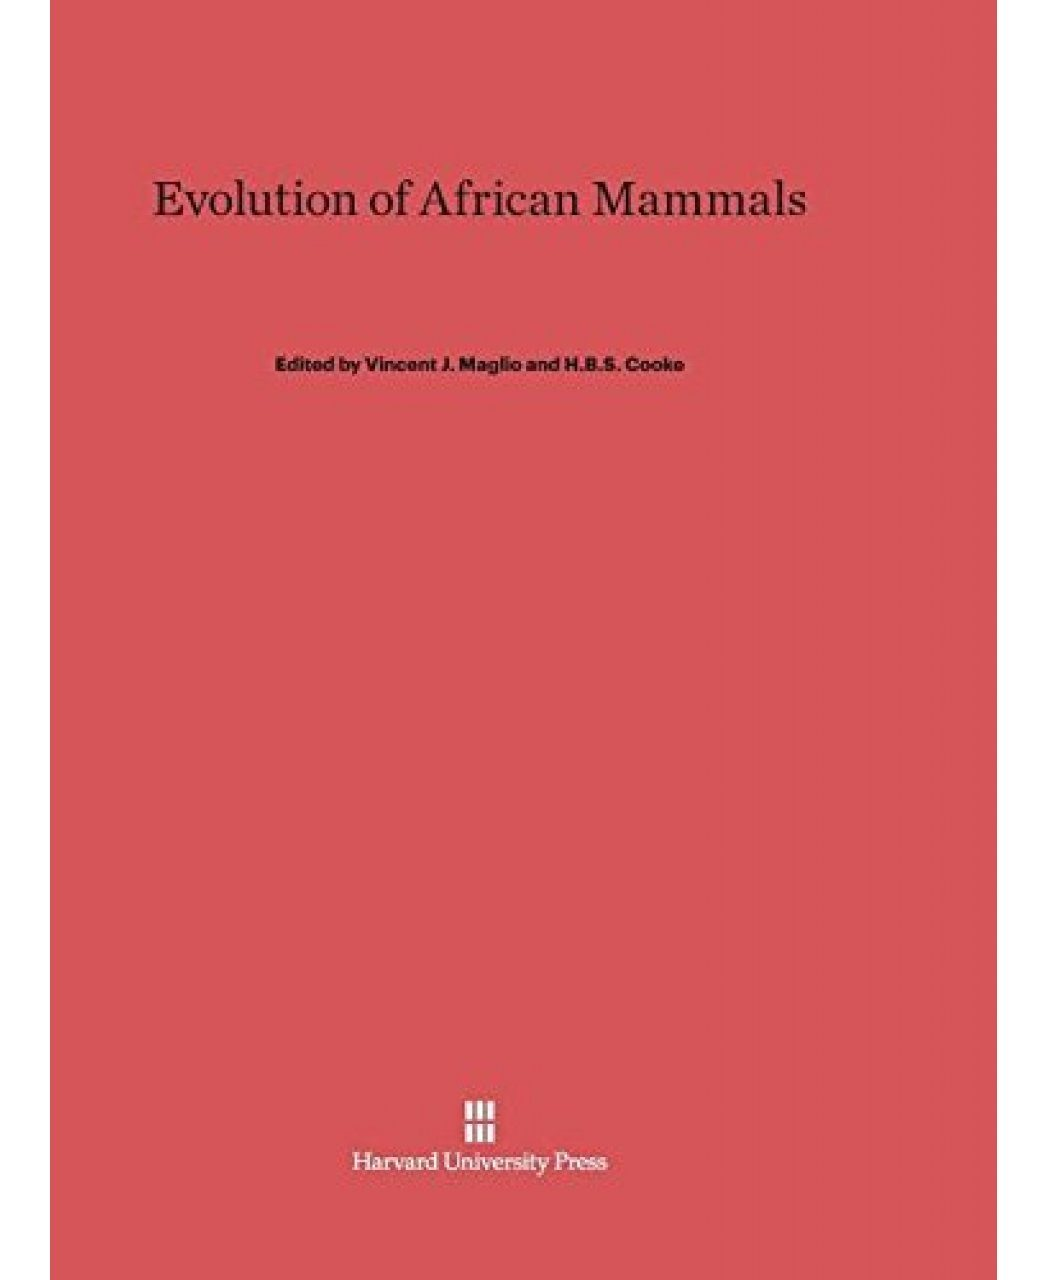 Evolution of African Mammals